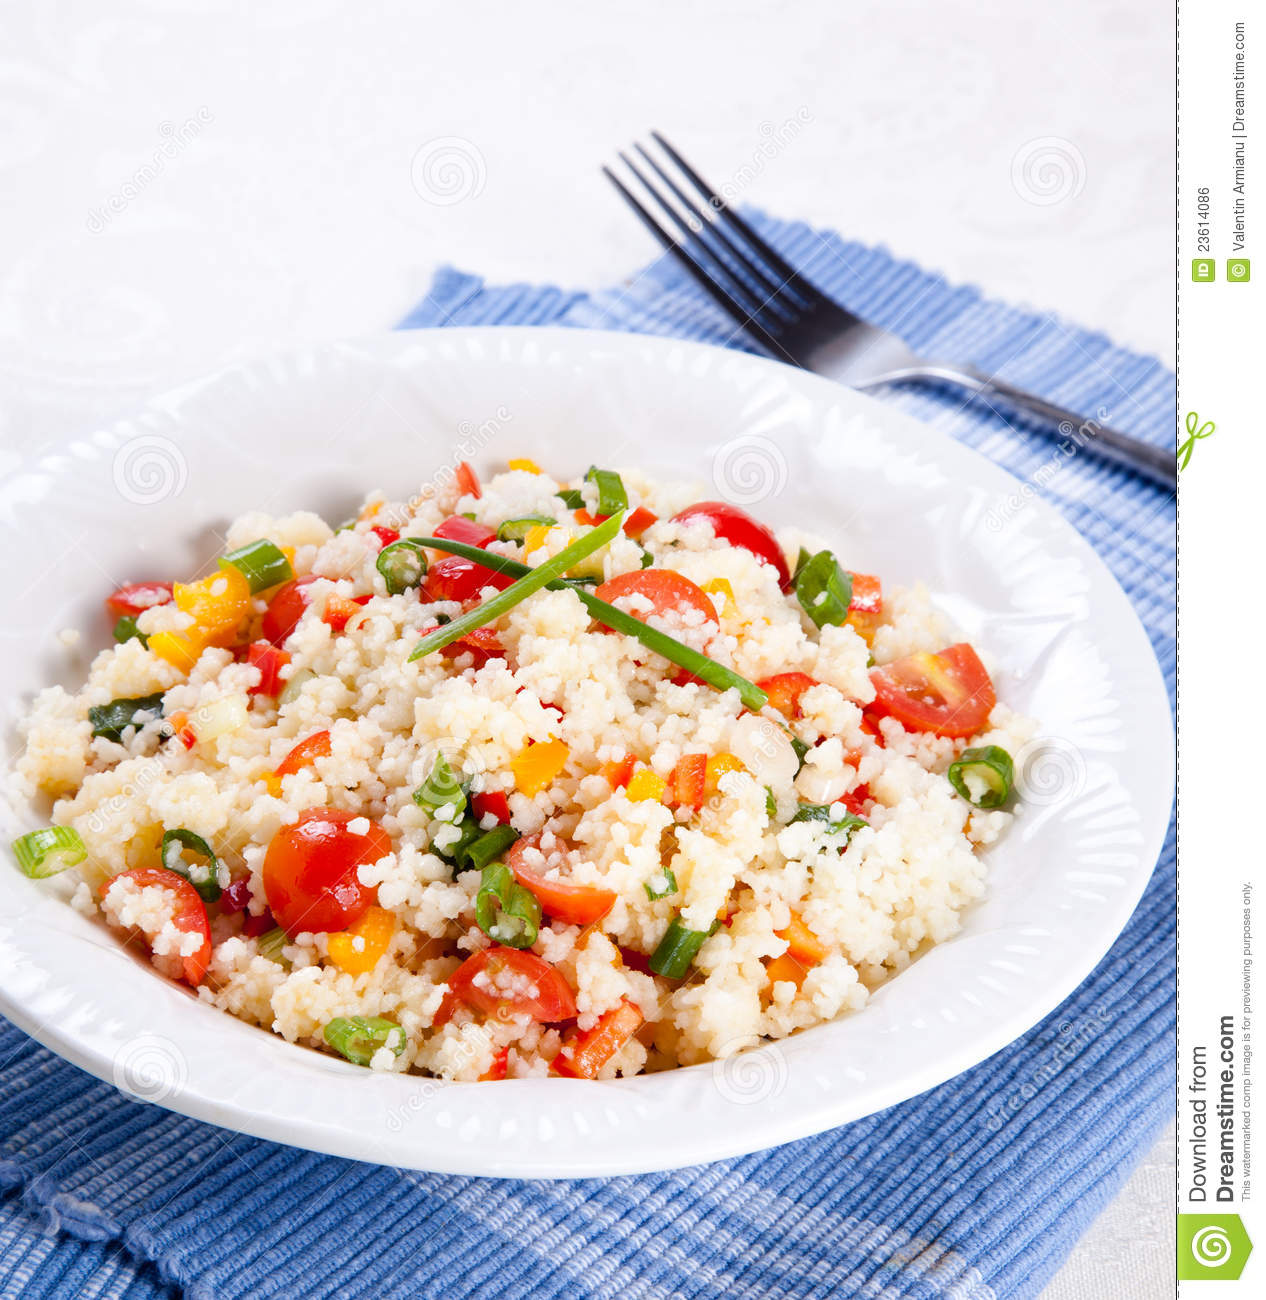 Couscous Salad Royalty Free Stock Image - Image: 23614086